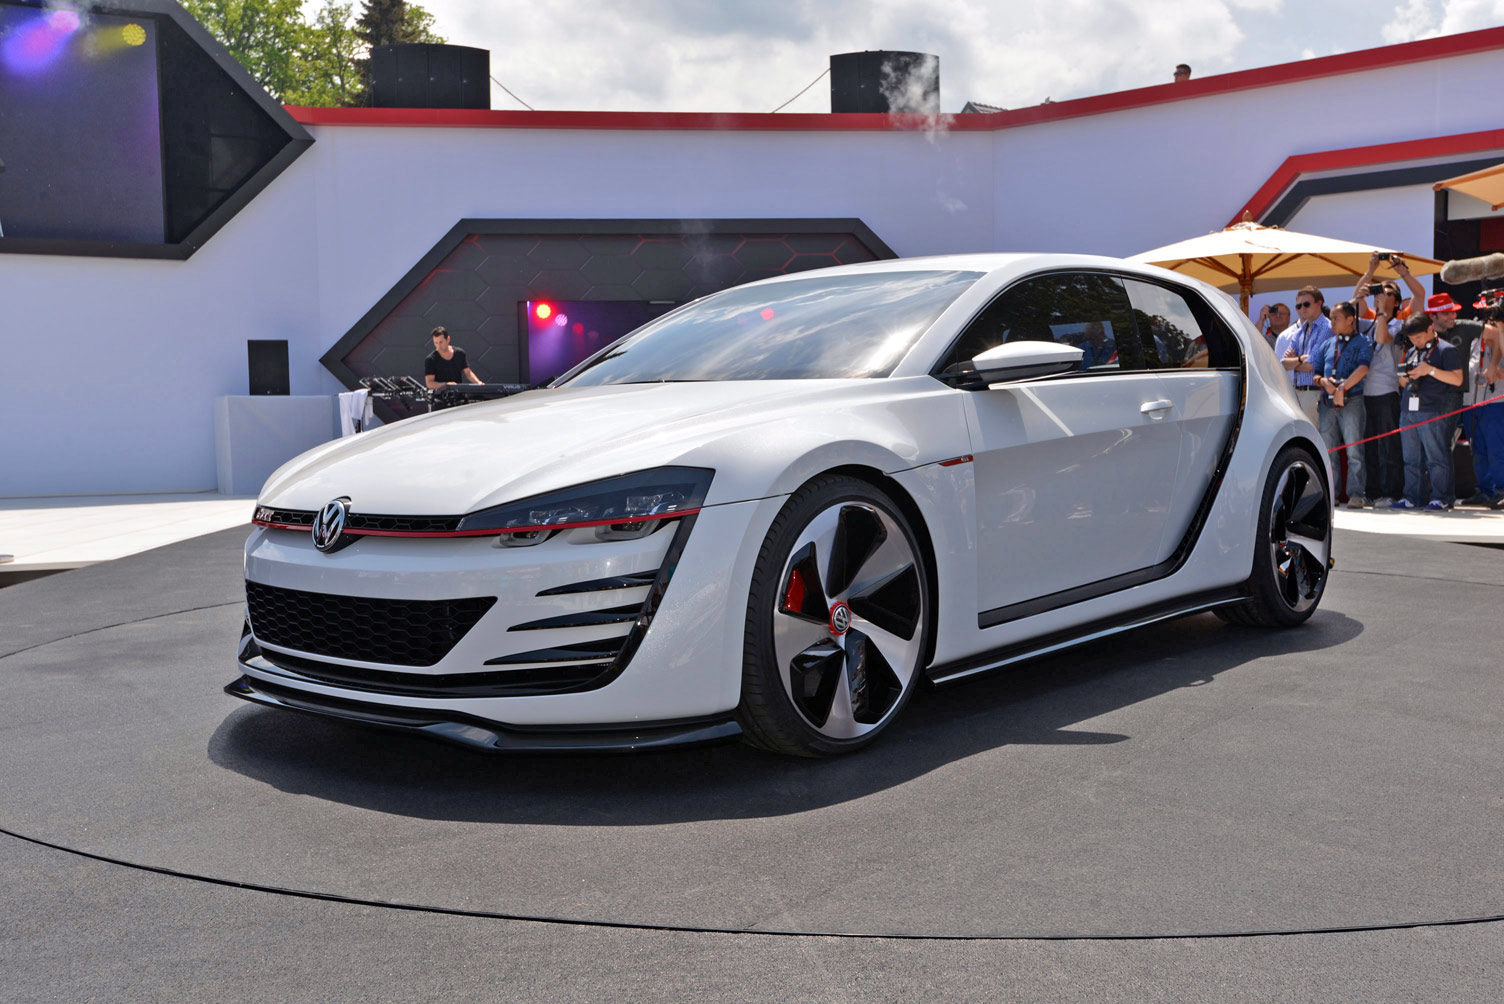 volkswagen-design-vision-gti-worthersee-018